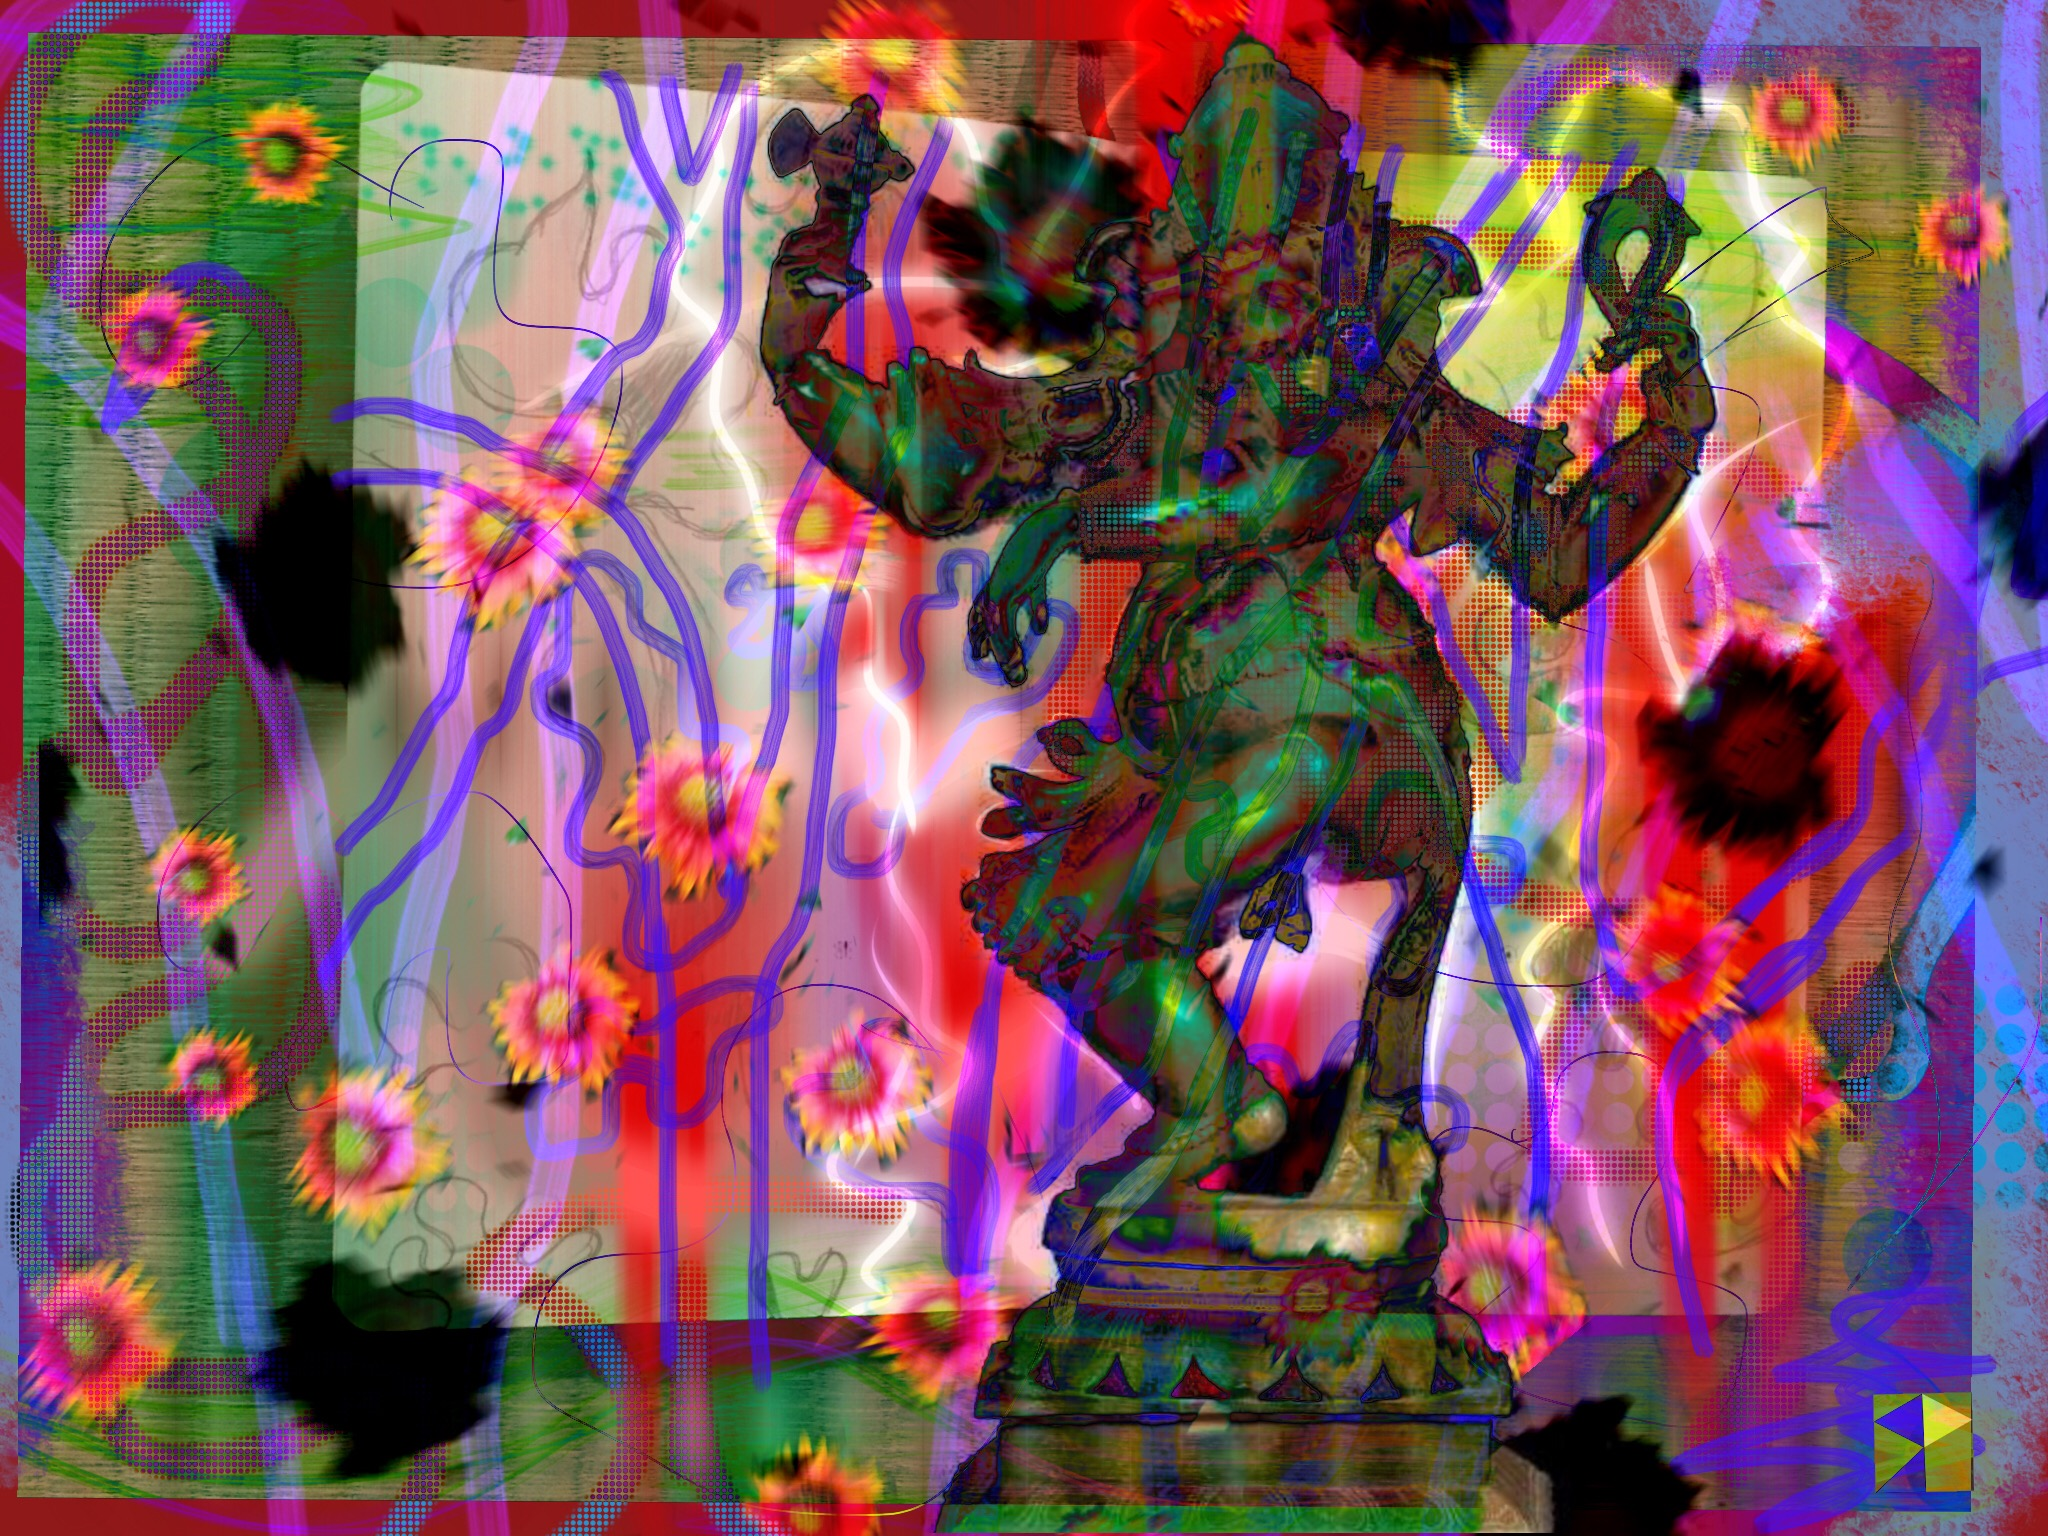 """Ganesh Abhishek   Electronics Painting, Sketchbook Scan, iPad, Procreate, Pencil 53, Photoshop. © 2016 dimensions variable to 48"""" x 60"""" giclee limited edition prints available contact the artist"""